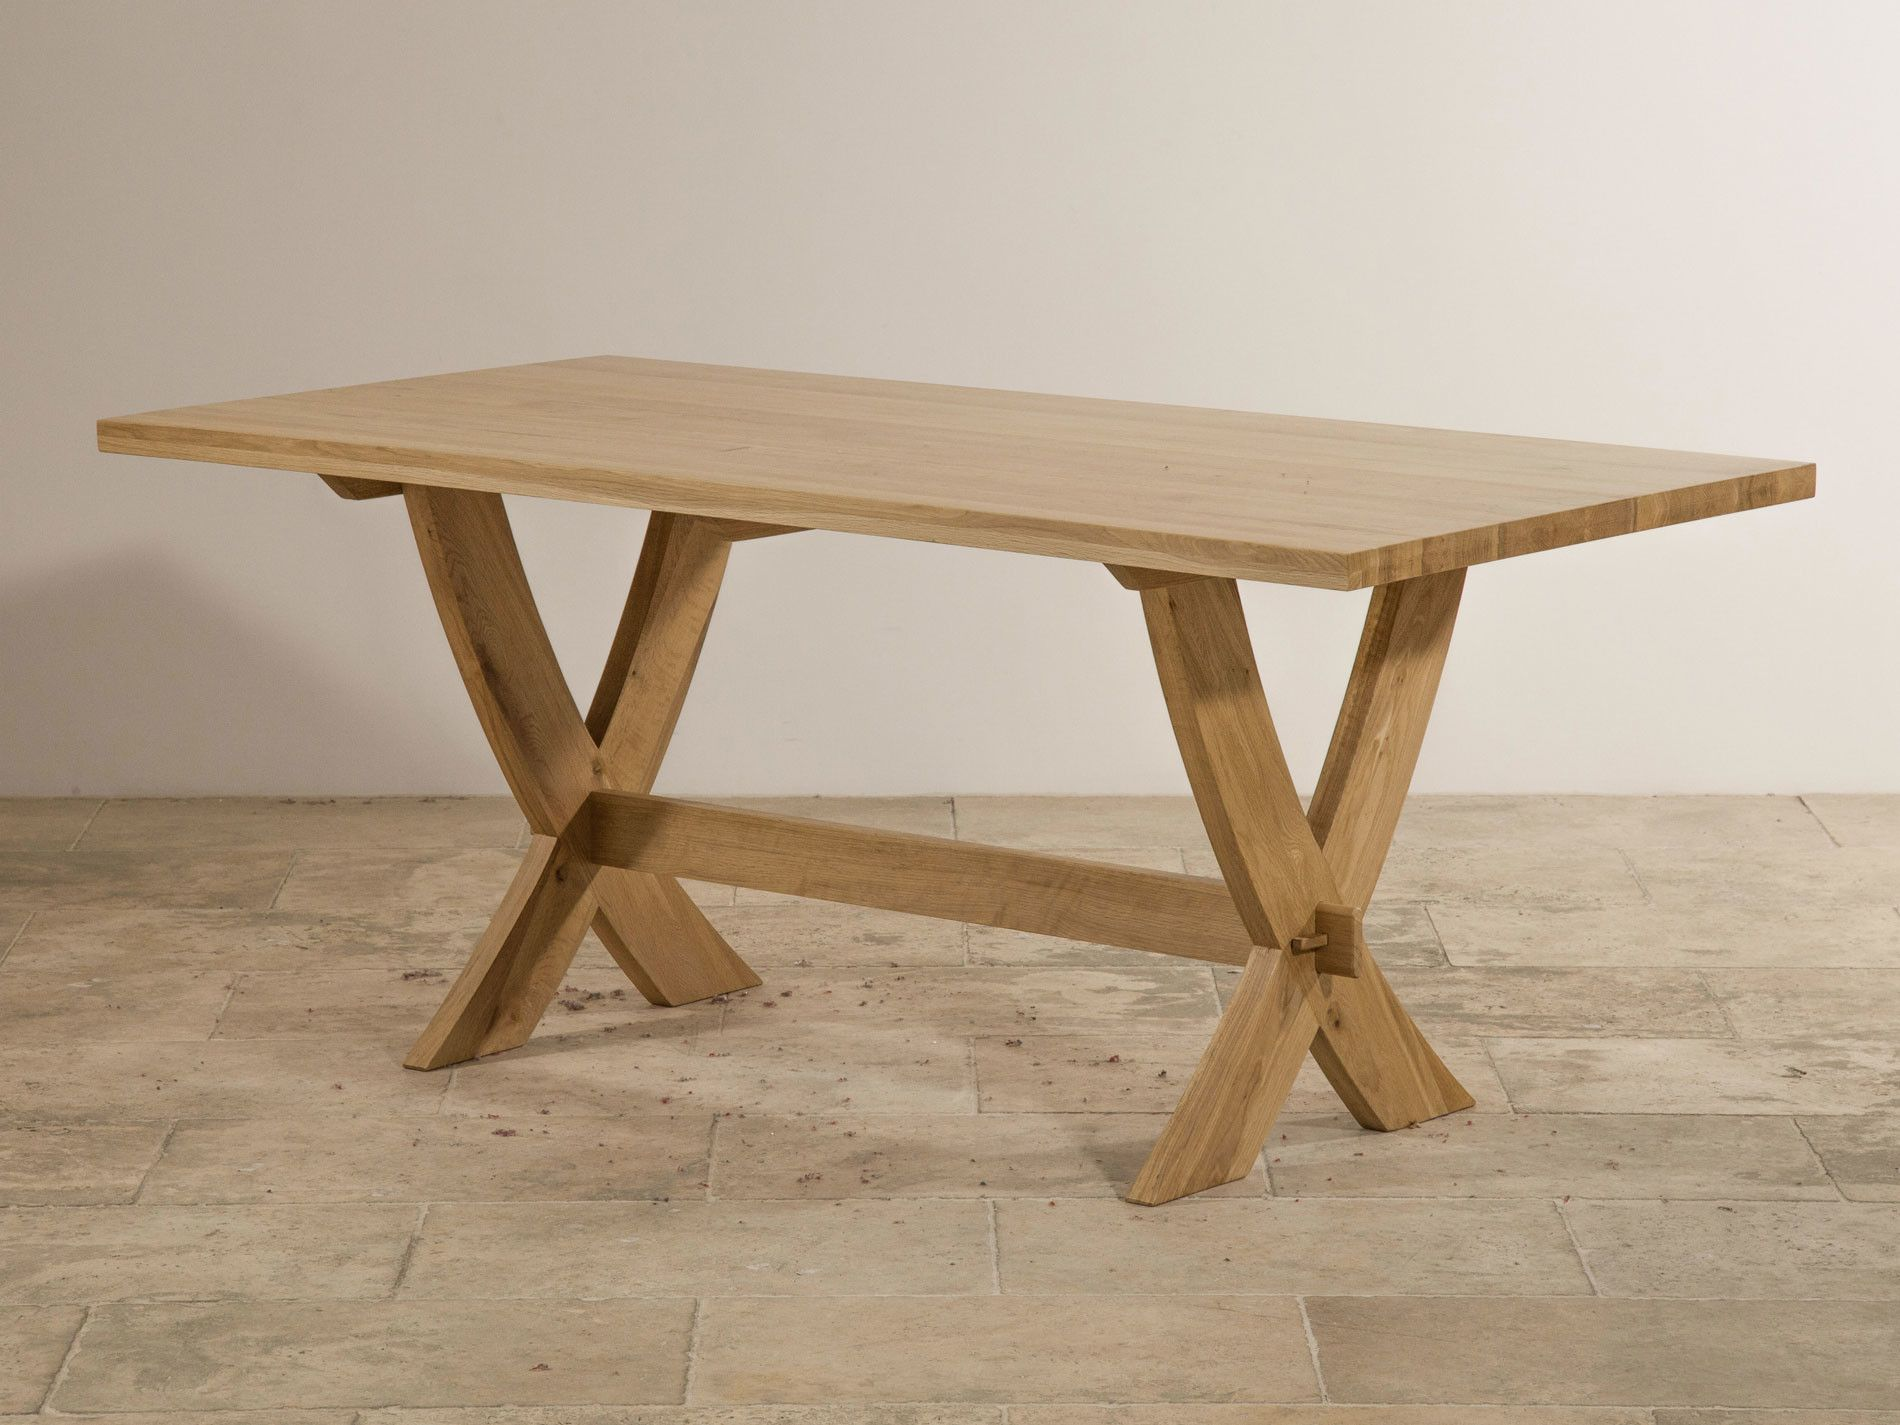 Crossley Natural Solid Oak Crossed Leg Dining Table Dining Table